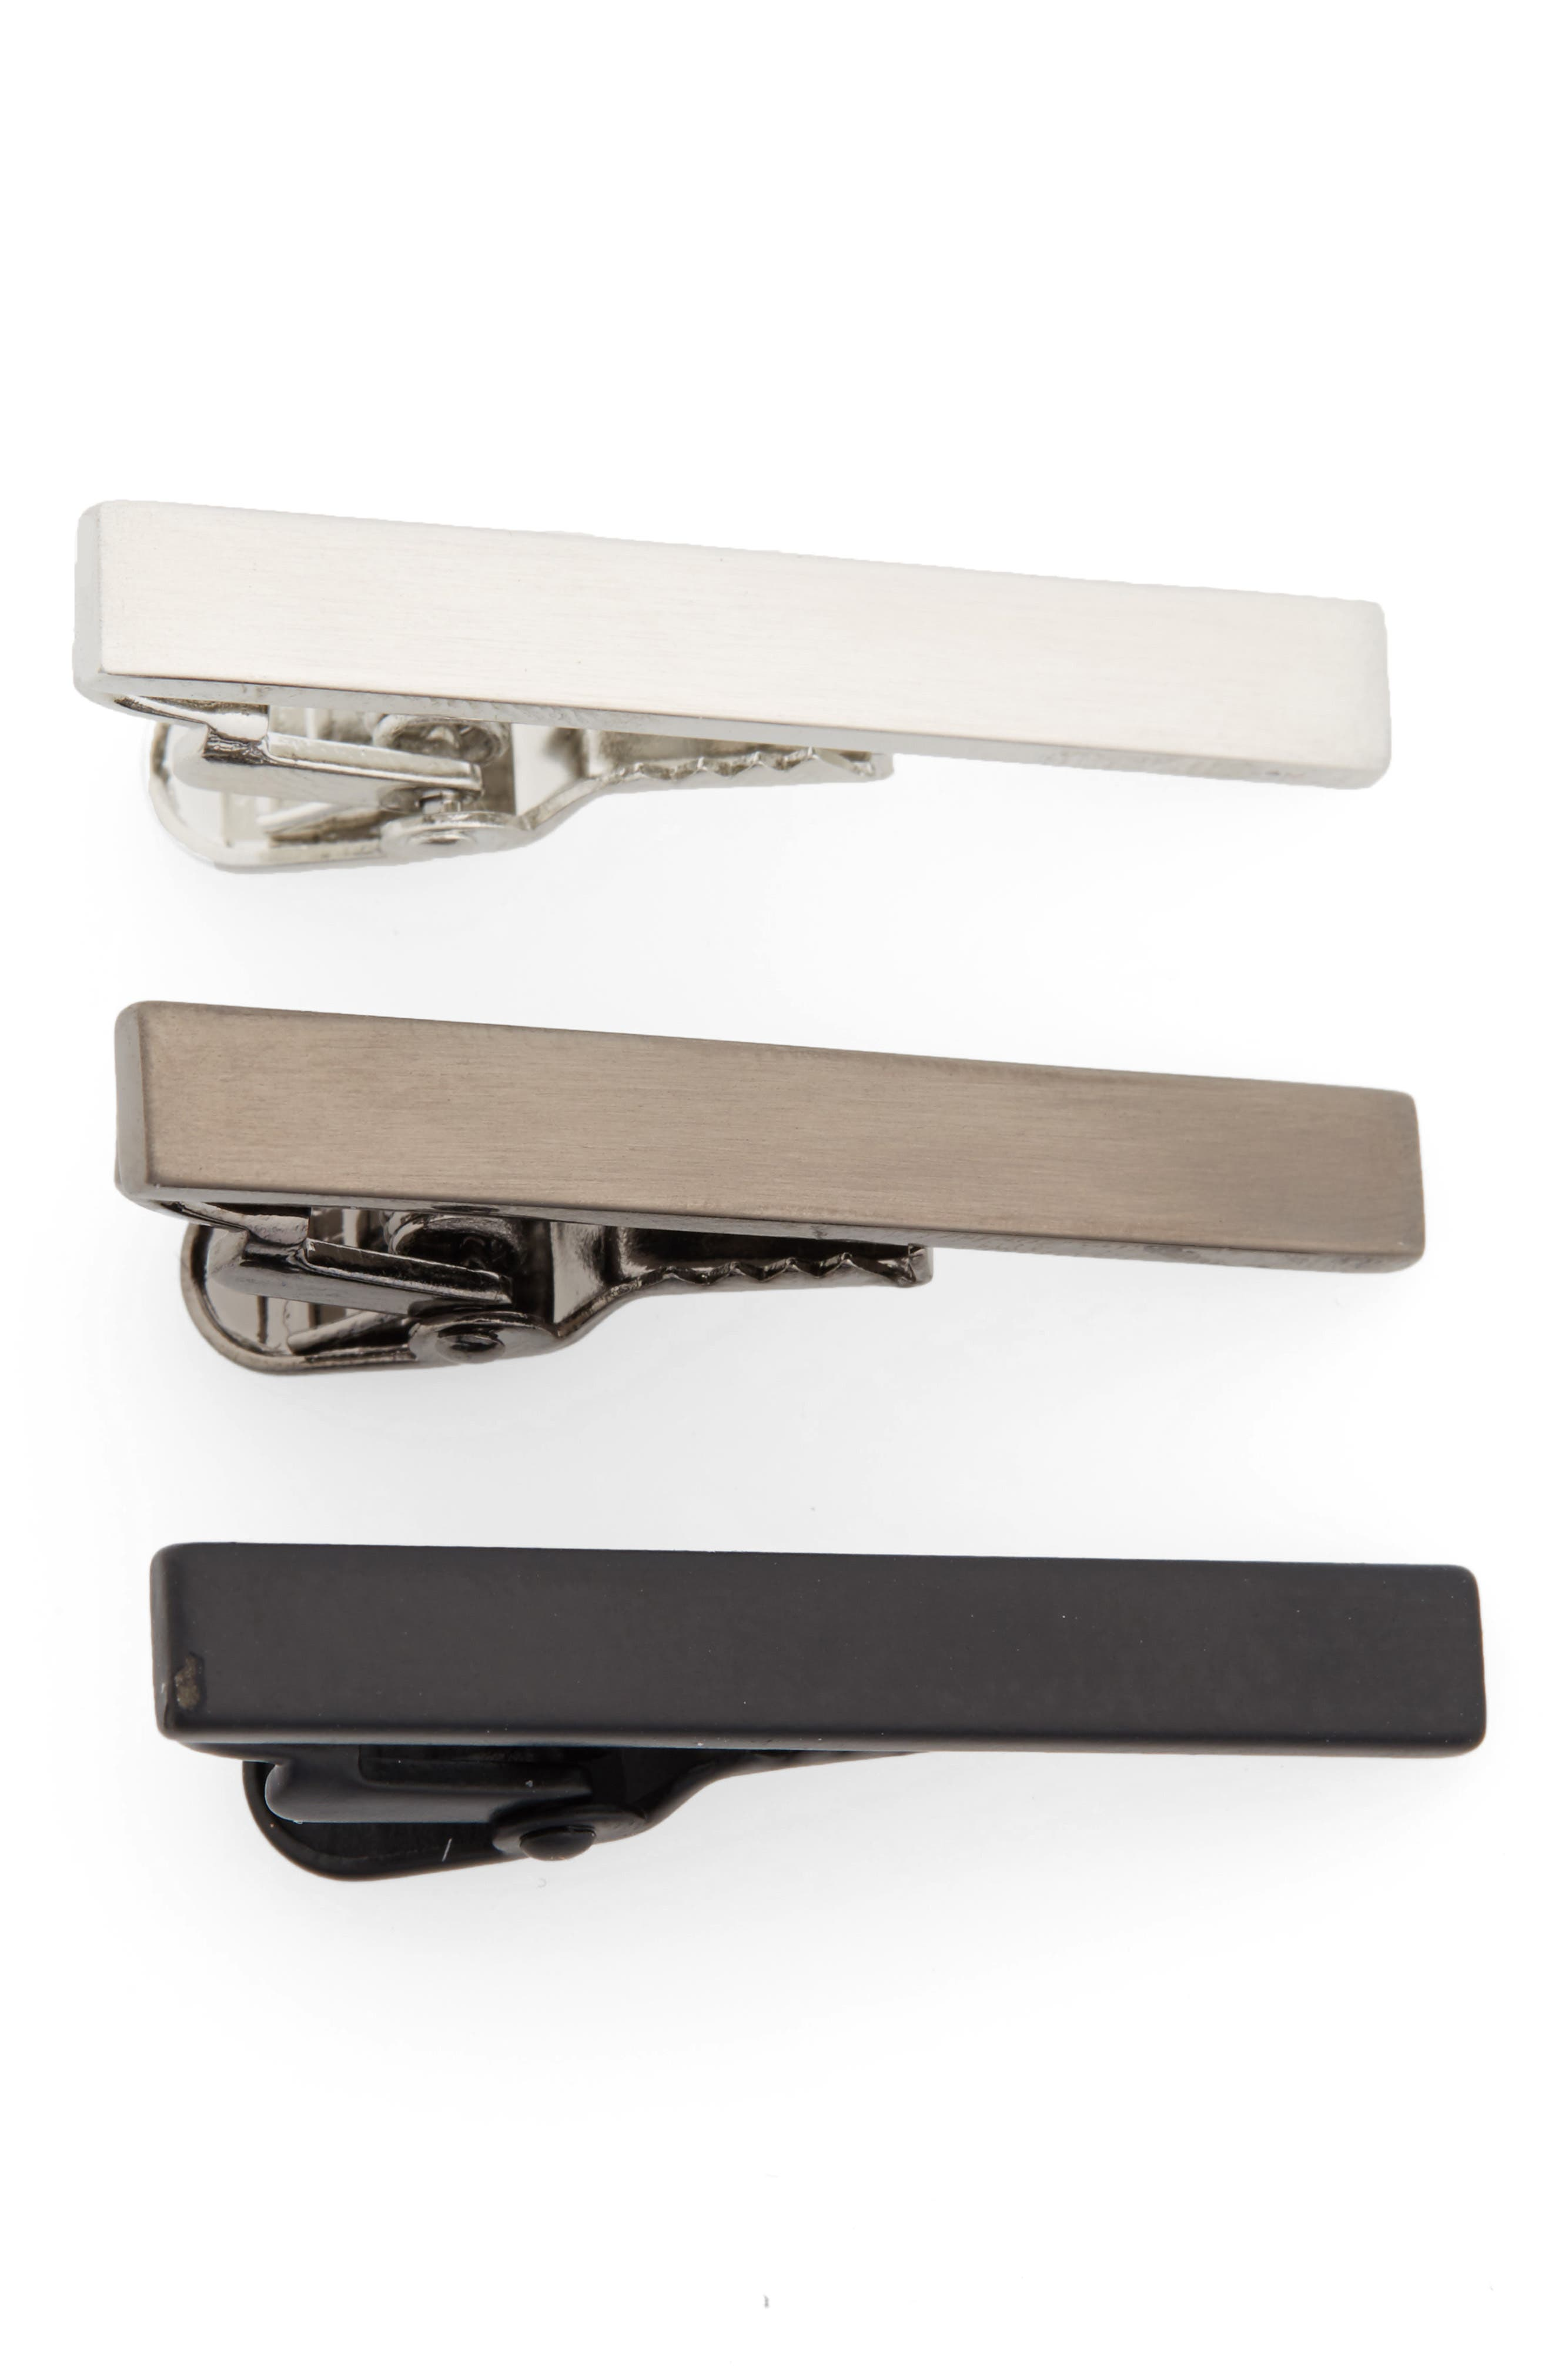 3-Pack Tie Bar Set,                             Main thumbnail 1, color,                             GUNMETAL/ SILVER/ BLACK